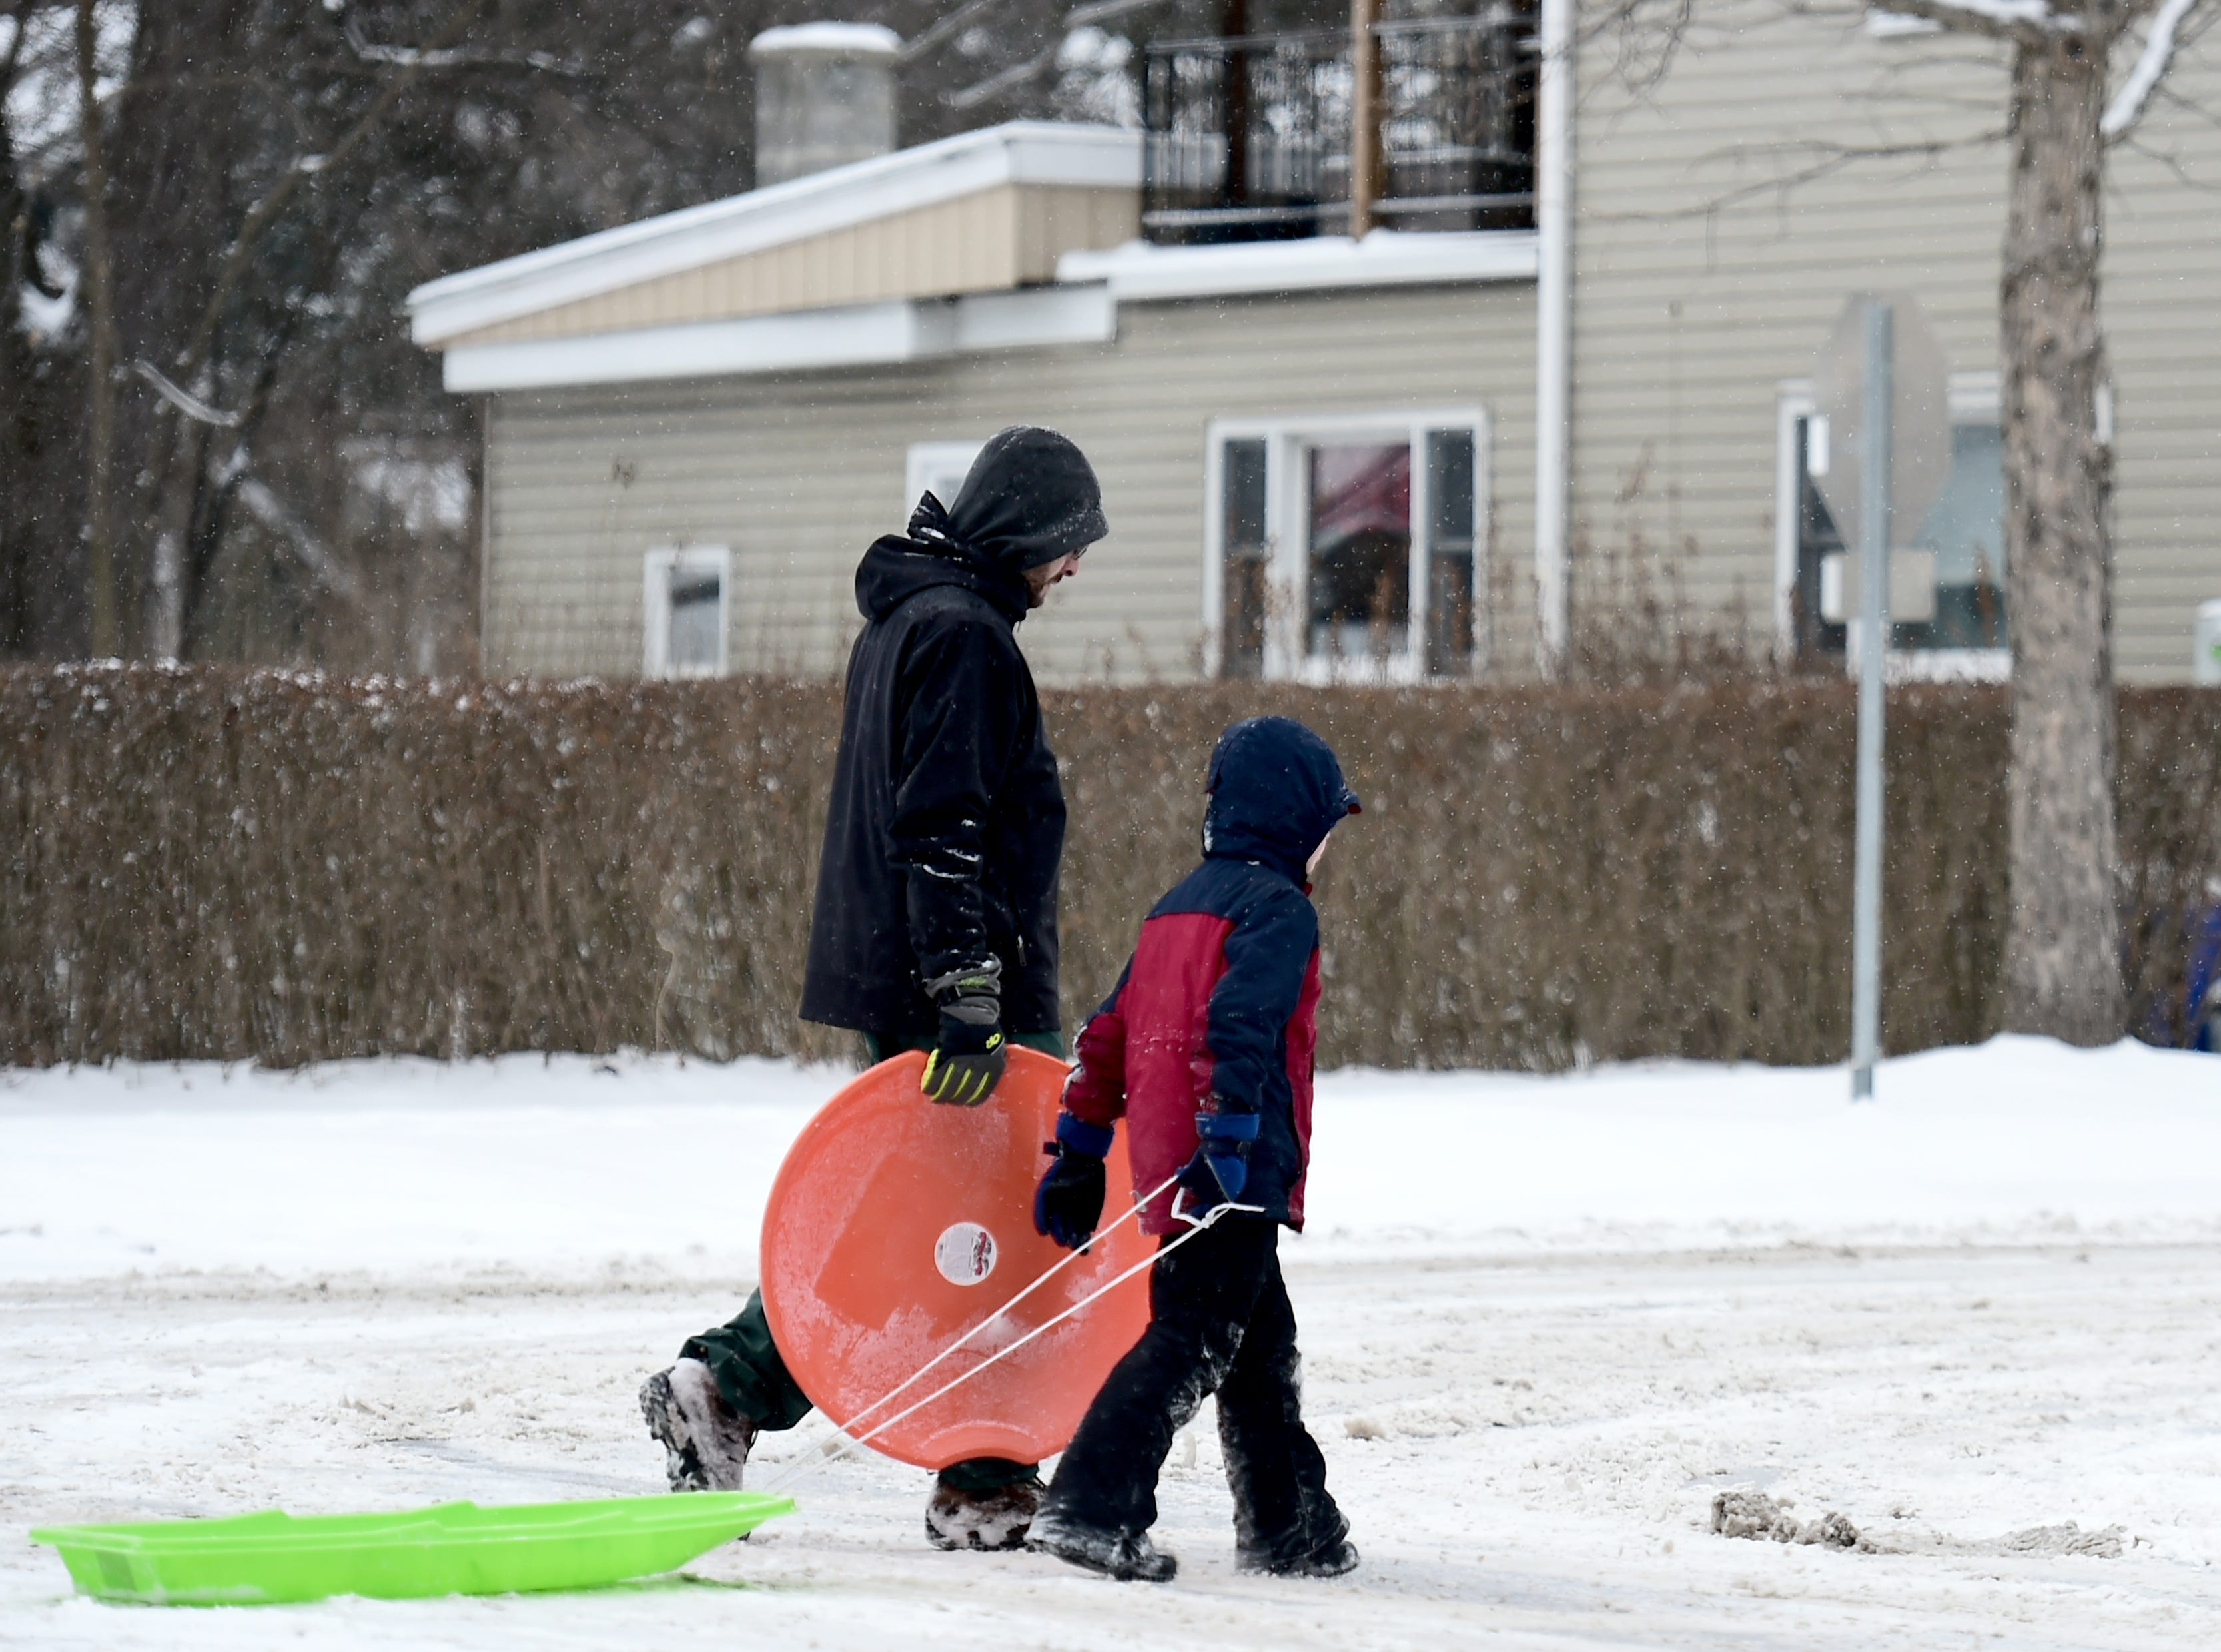 Jonathan and Gavin Peet took advantage of the day off from school by sledding in the Fall Creek area of Ithaca on Tuesday, February 12, 2019.